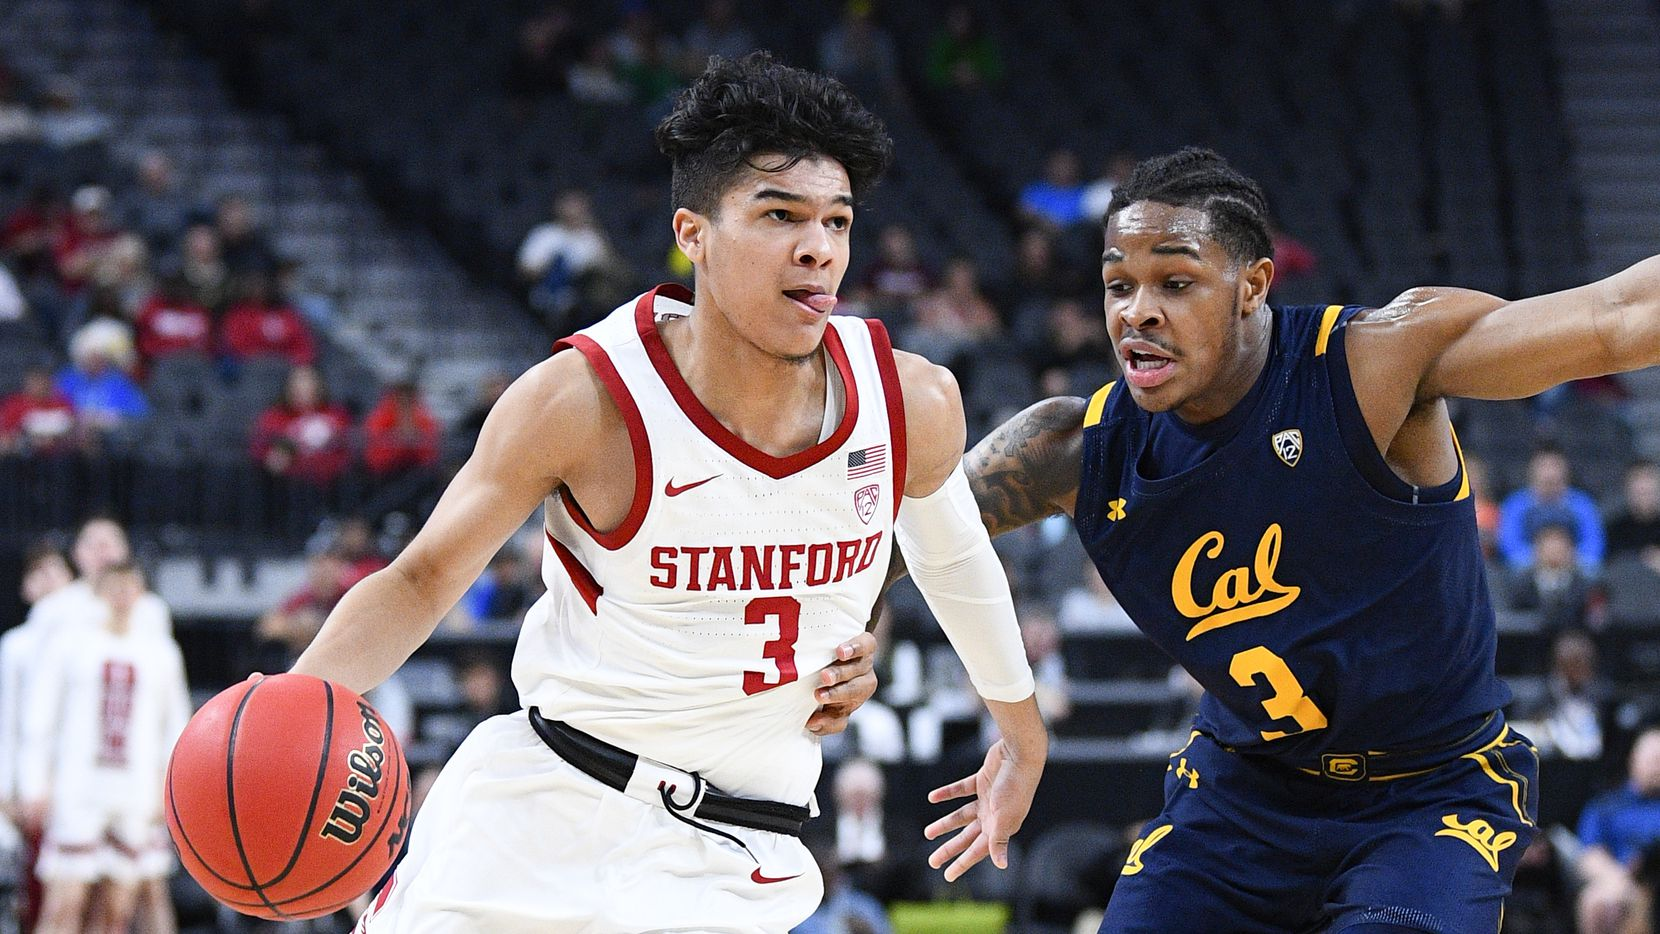 LAS VEGAS, NV - MARCH 11: Stanford Cardinal guard Tyrell Terry (3) drives to the basket against California Golden Bears guard Paris Austin (3) during the first round game of the men's Pac-12 Tournament between the Stanford Cardinal and the California Bears on March 11, 2020, at the T-Mobile Arena in Las Vegas, NV.